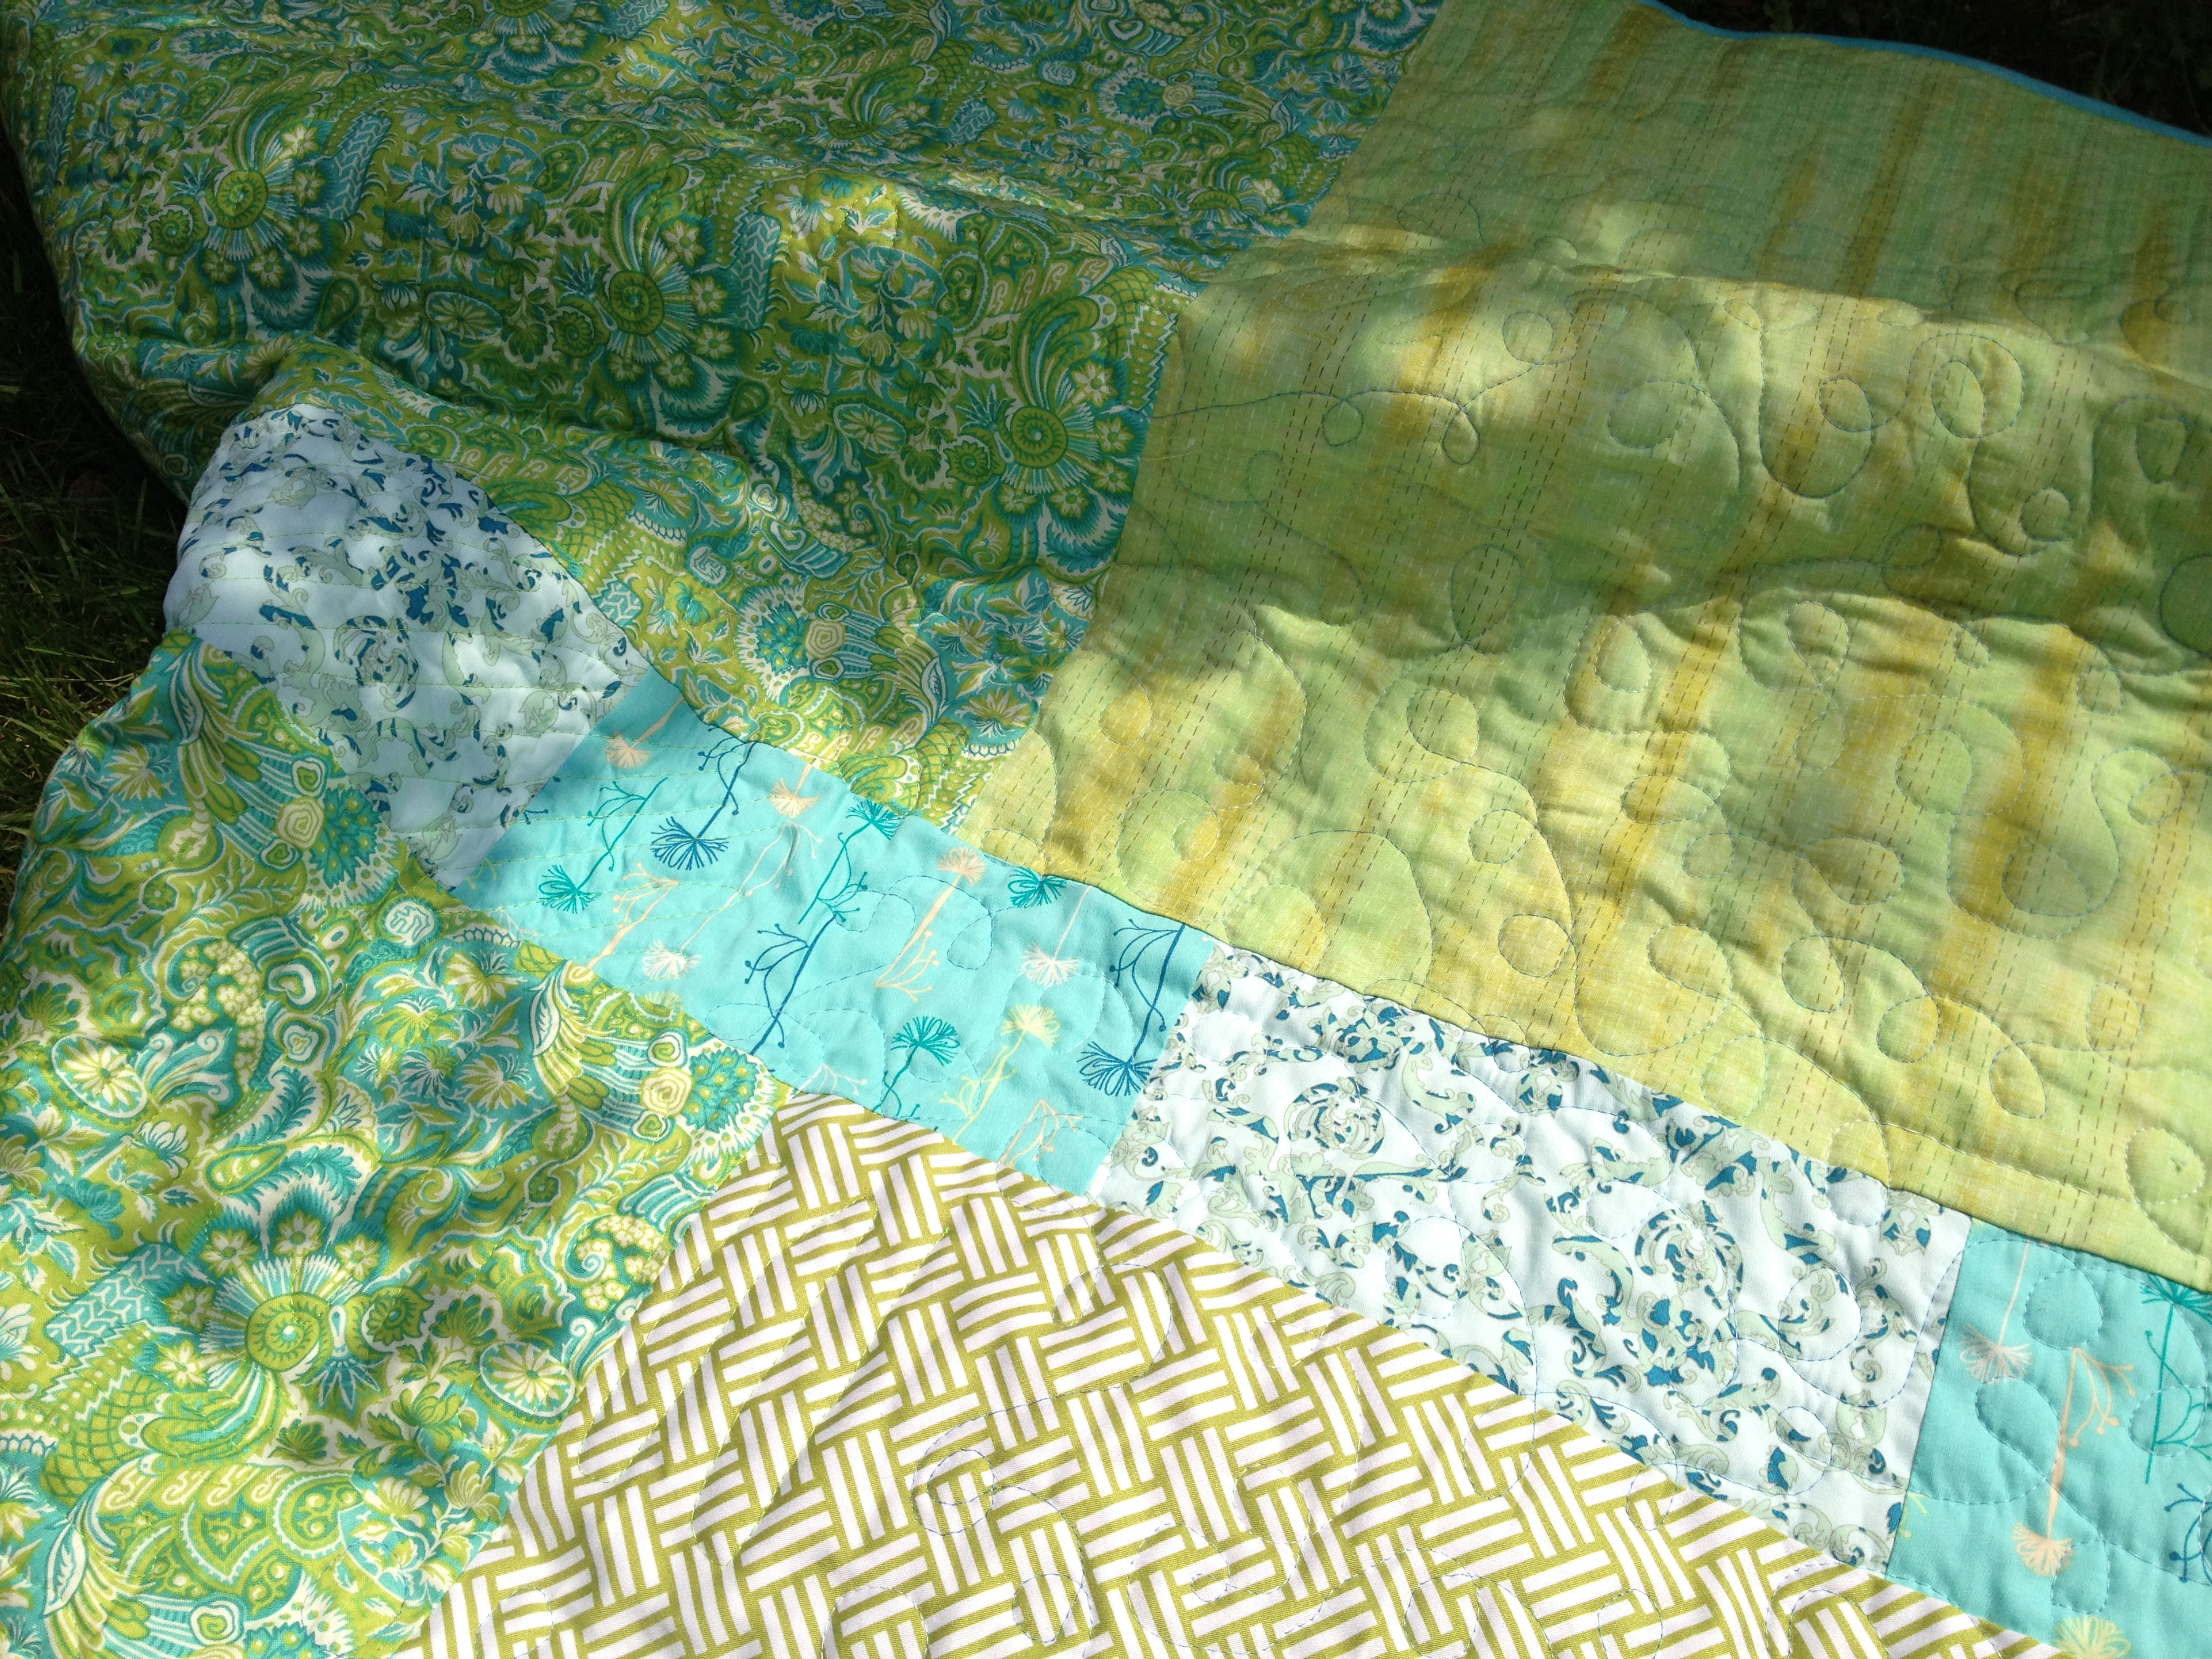 Lala Salama quilt back close up